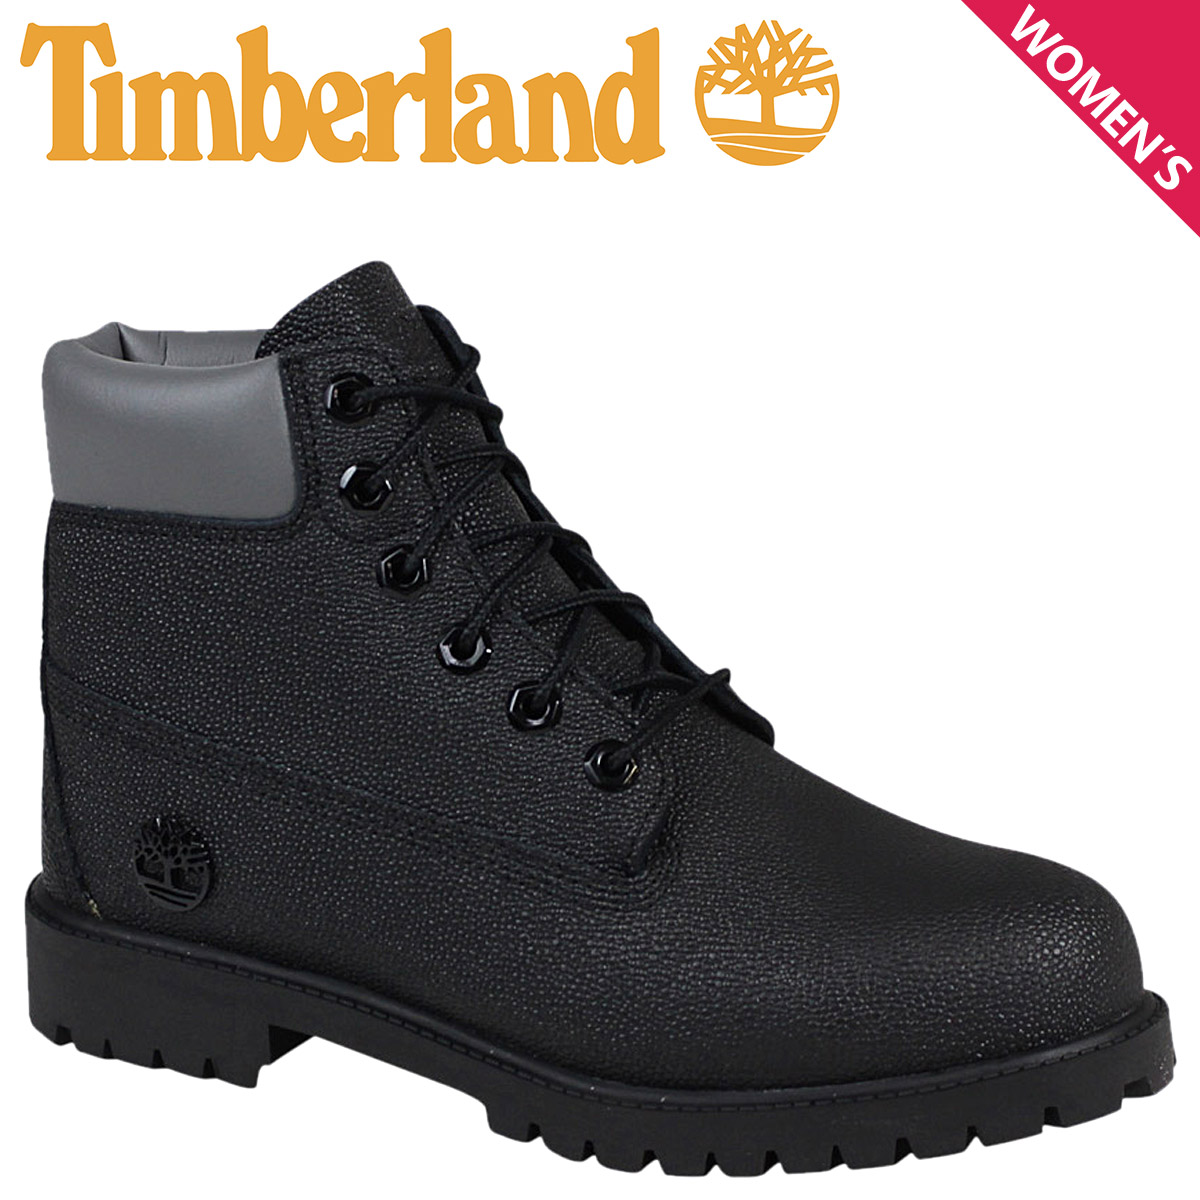 Boots 6 In Premium Black Jr - Timberland